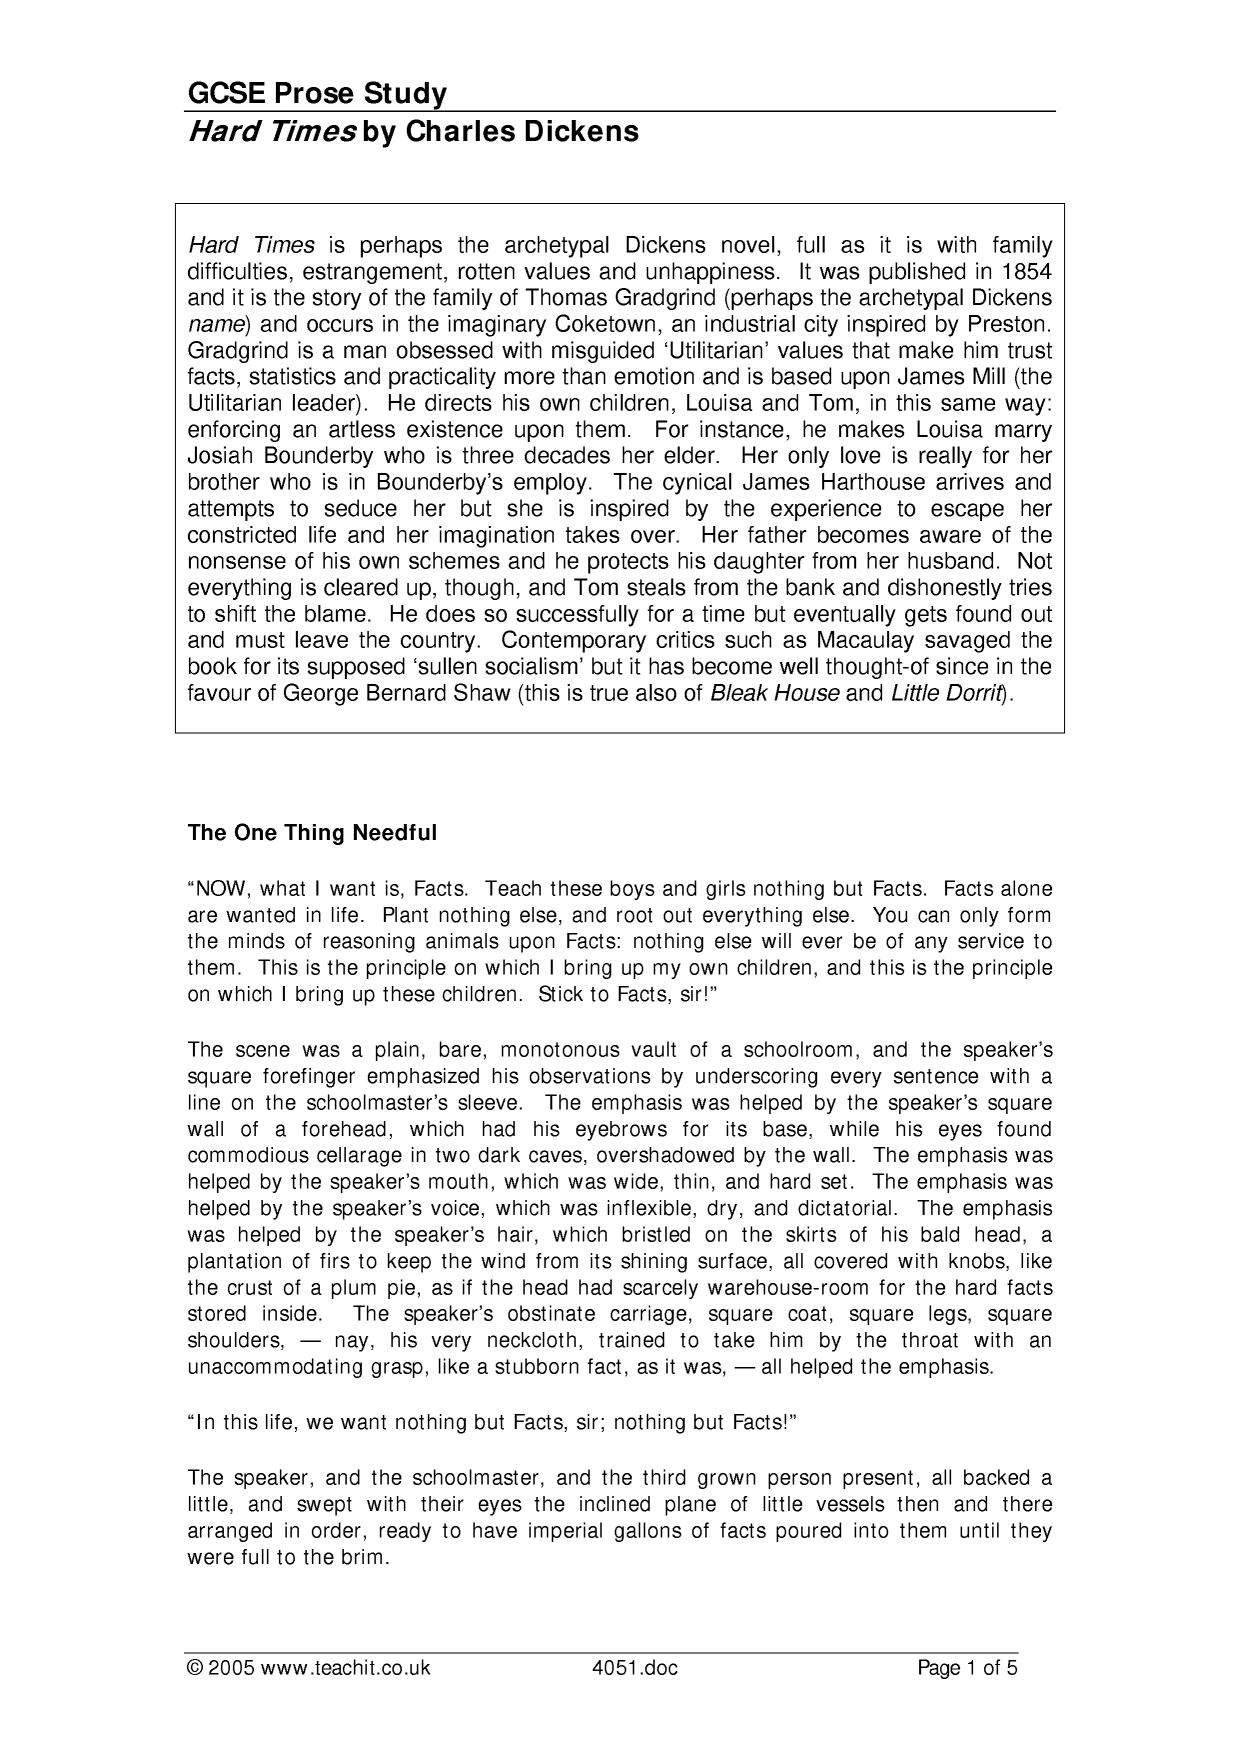 the difficulty of understanding heideggers prose Georges bataille and martin heidegger: my overarching claim will be that a  contrastive approach allows a better understanding of two central dynamics  within their work  the key difficulty, he states, is how to study experience and  yet 'nicht heraustritt  his earlier work as trapped by the prose and grammar of  metaphysics.